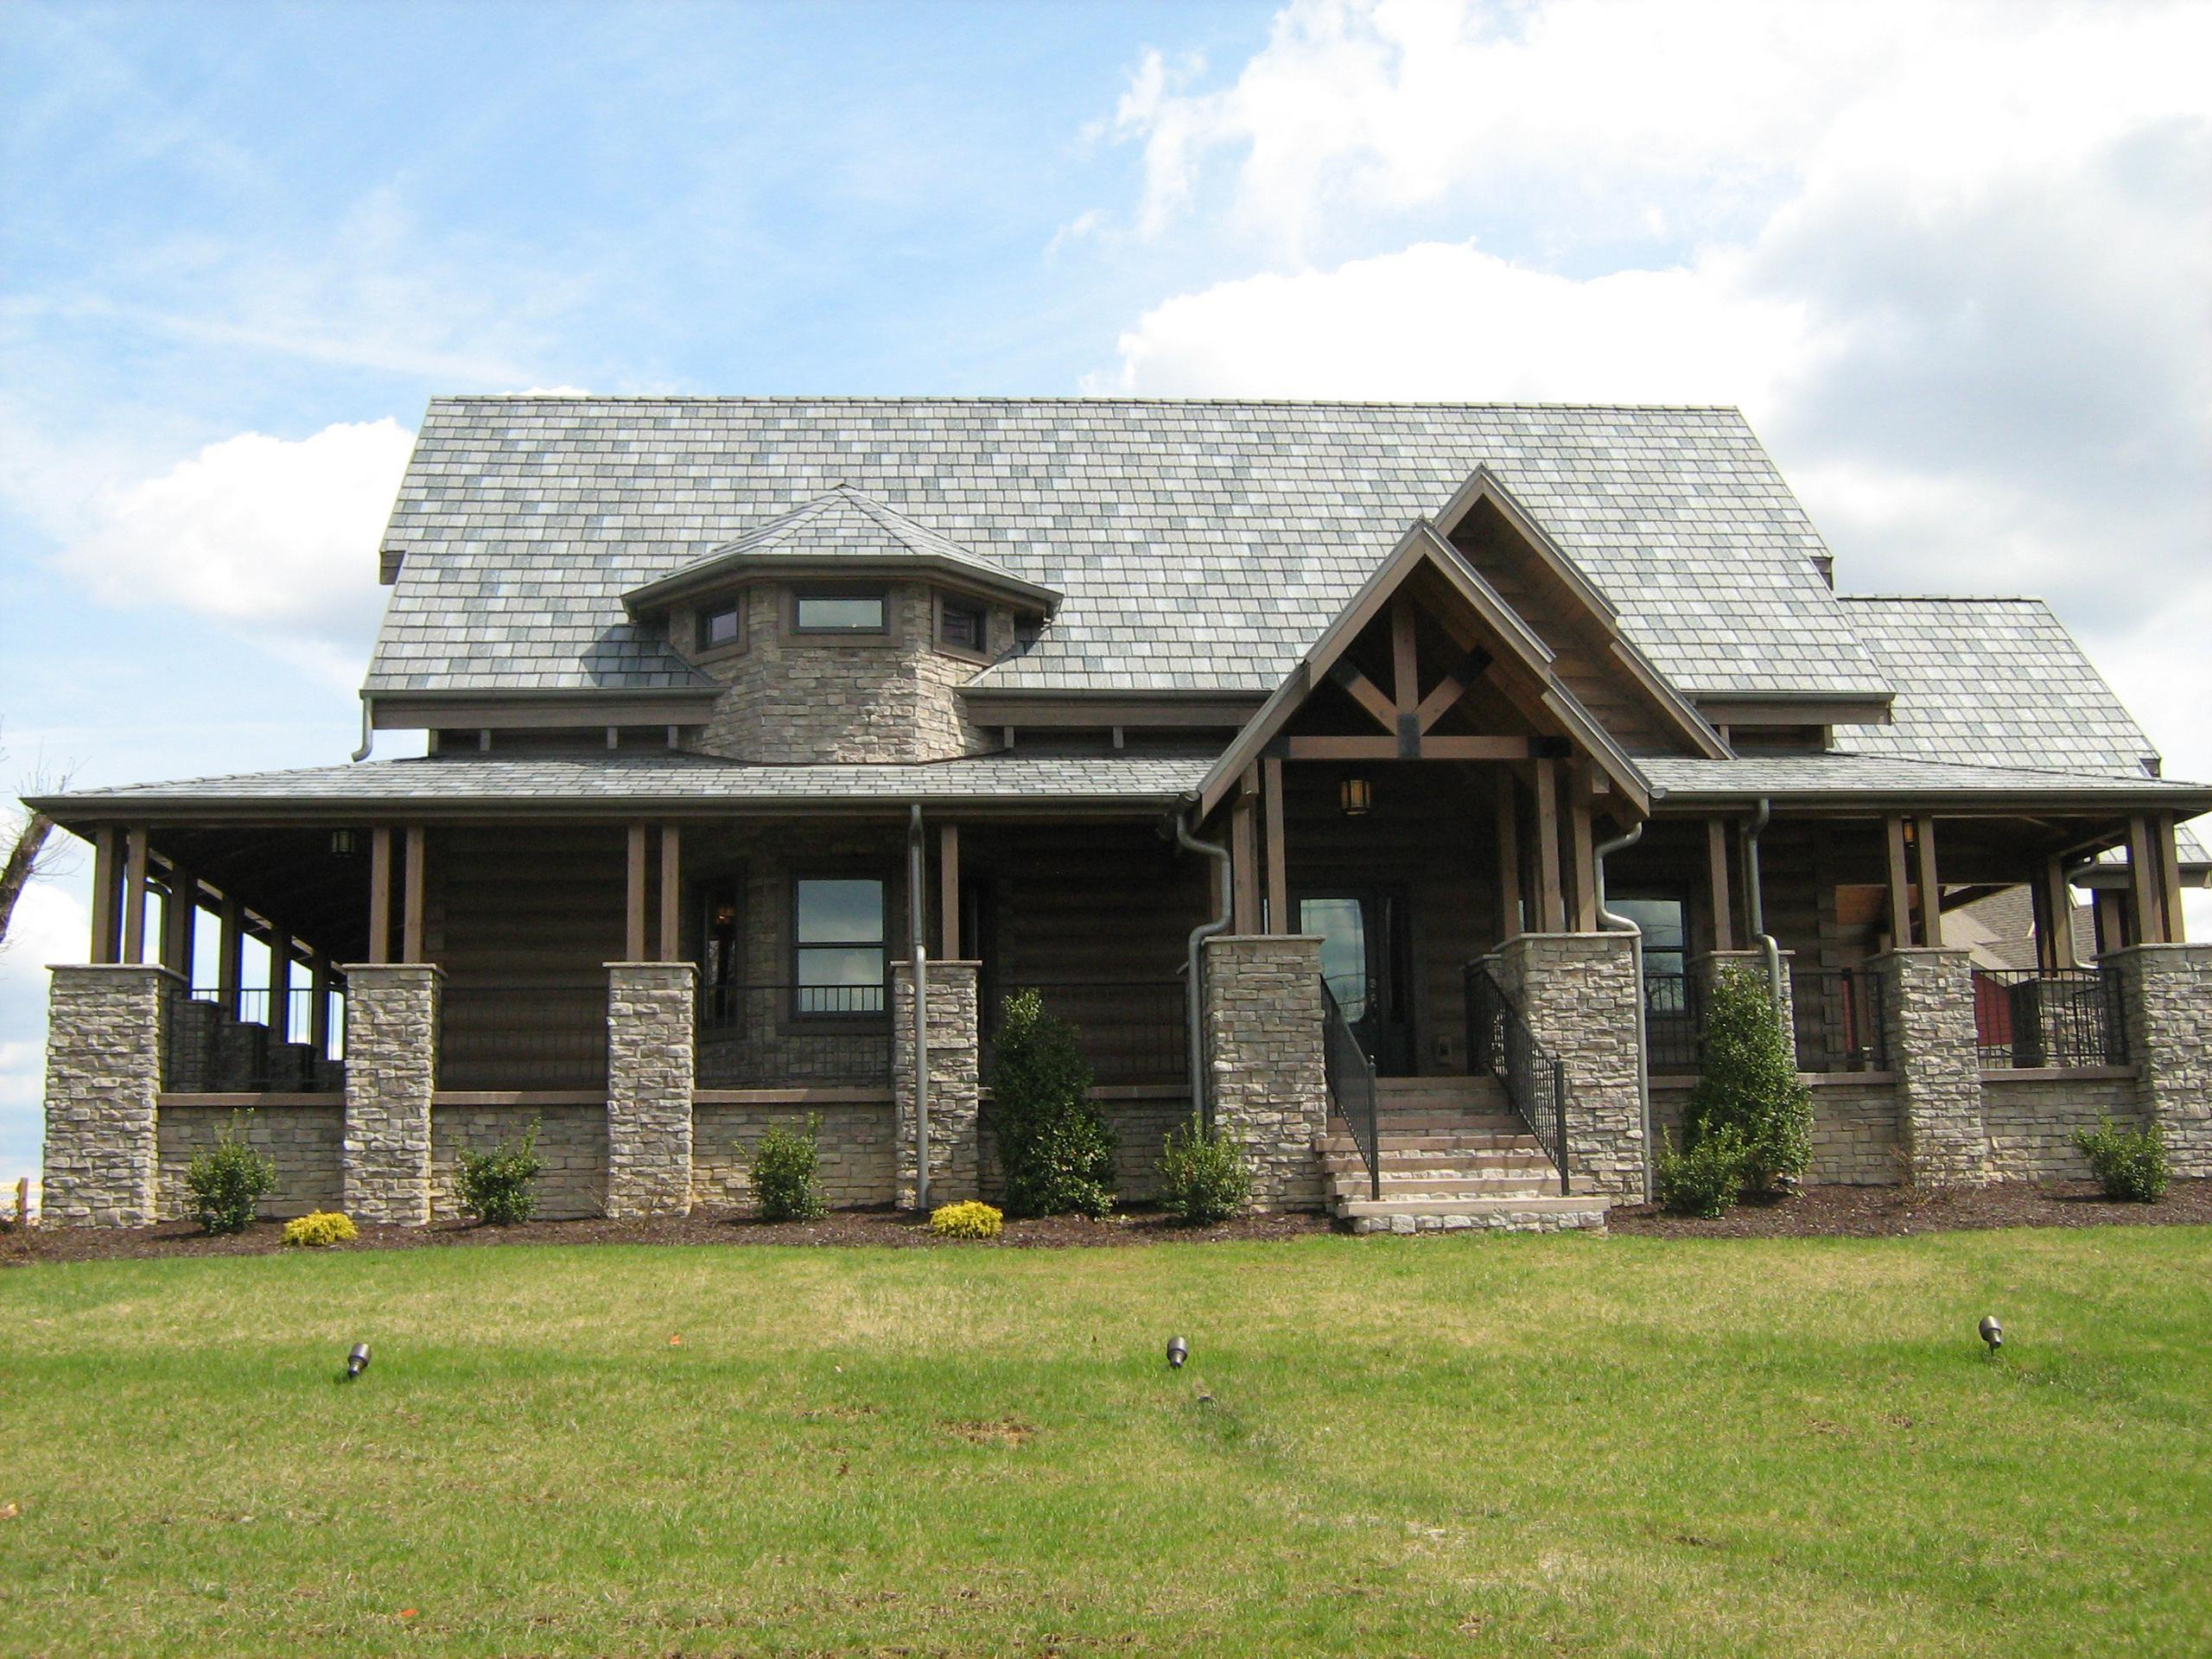 The Arrowline Slate T-Tone Blend Roofing offers quality and style to the stunning look of this log cabin home.